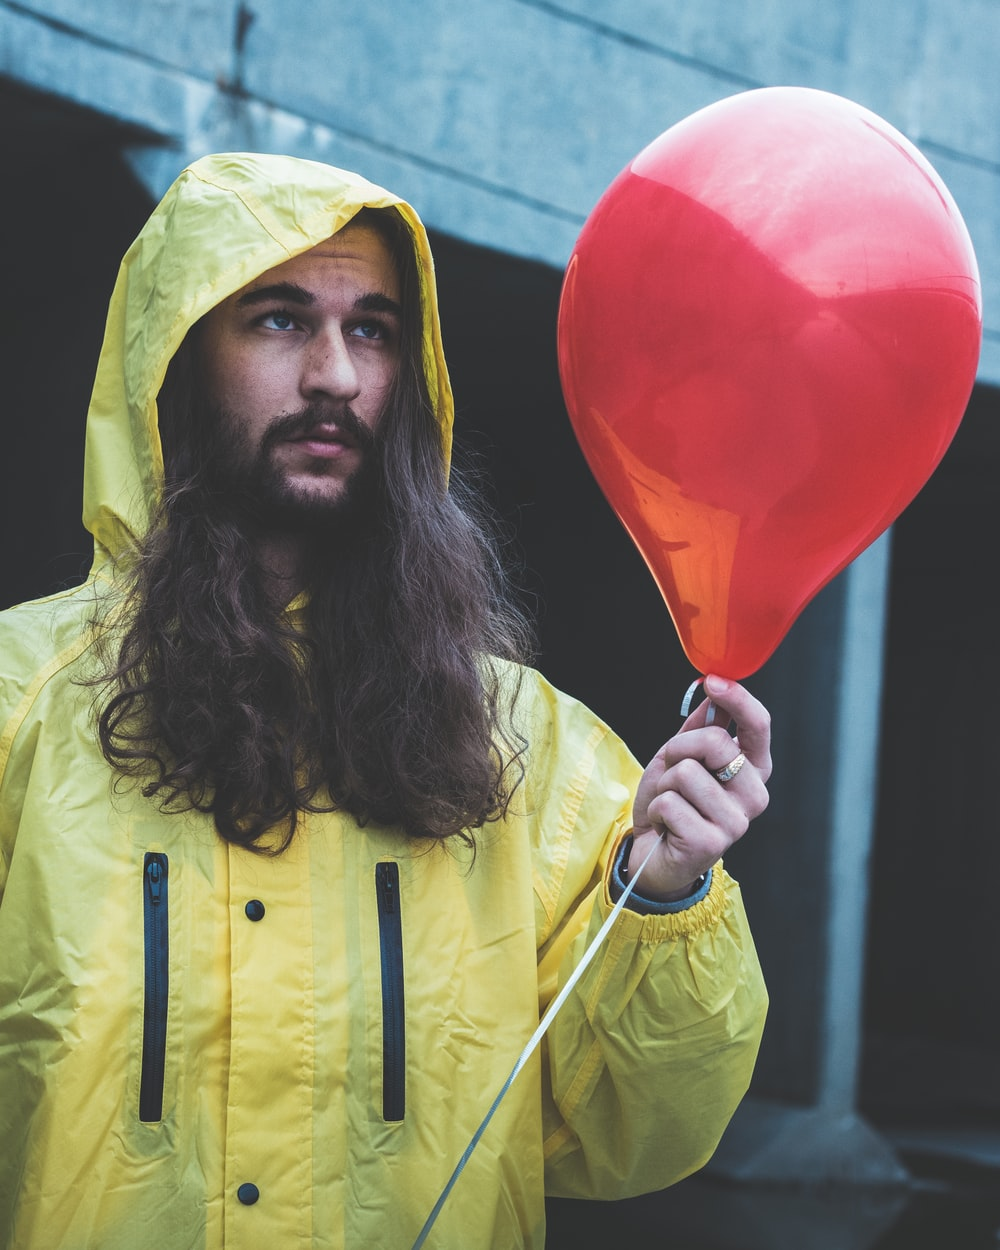 man holding red balloon